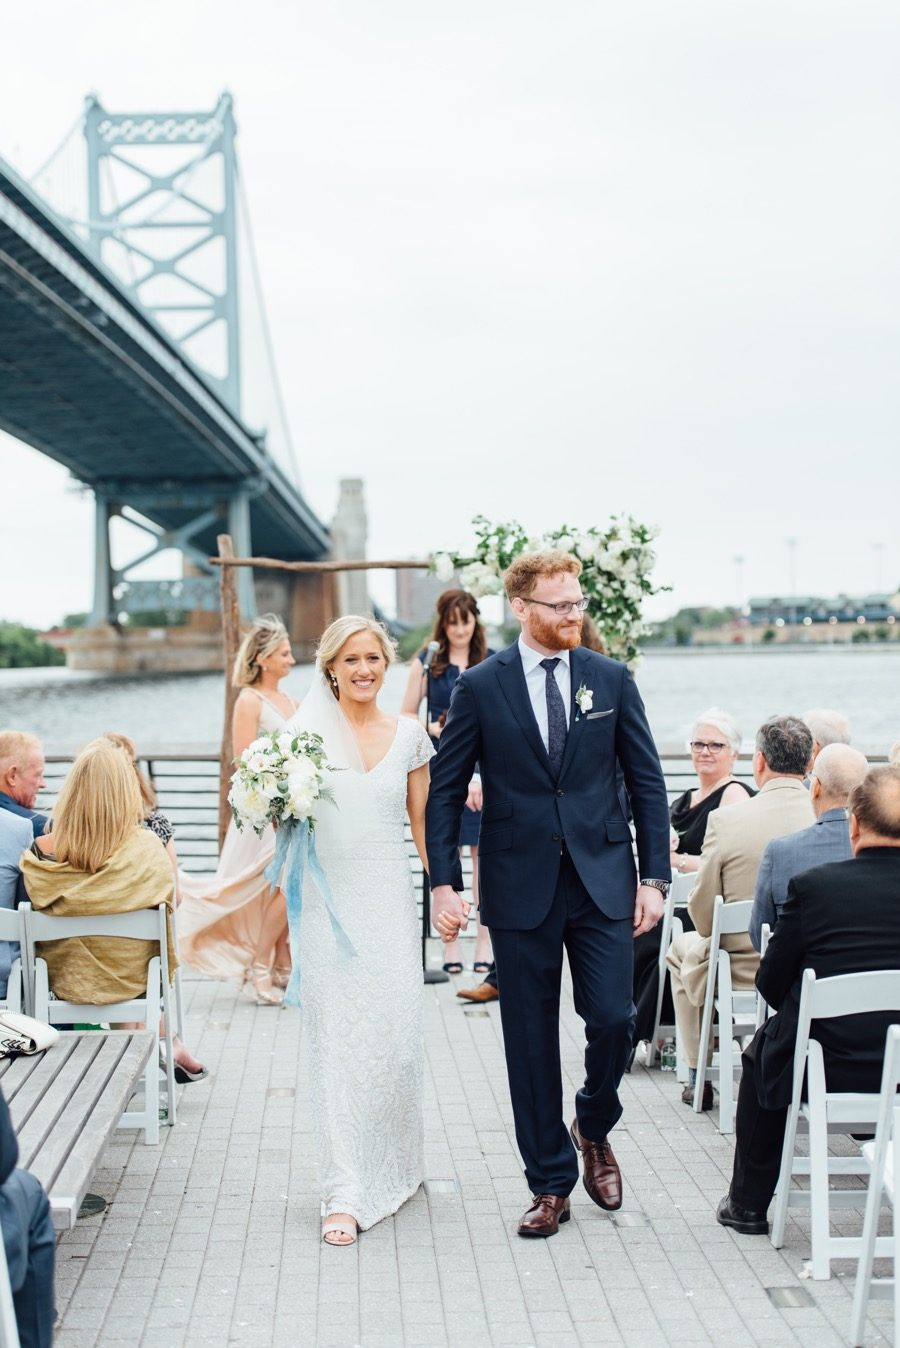 This Old City Wedding Perfectly Blends Rustic Chic with City Cool ...